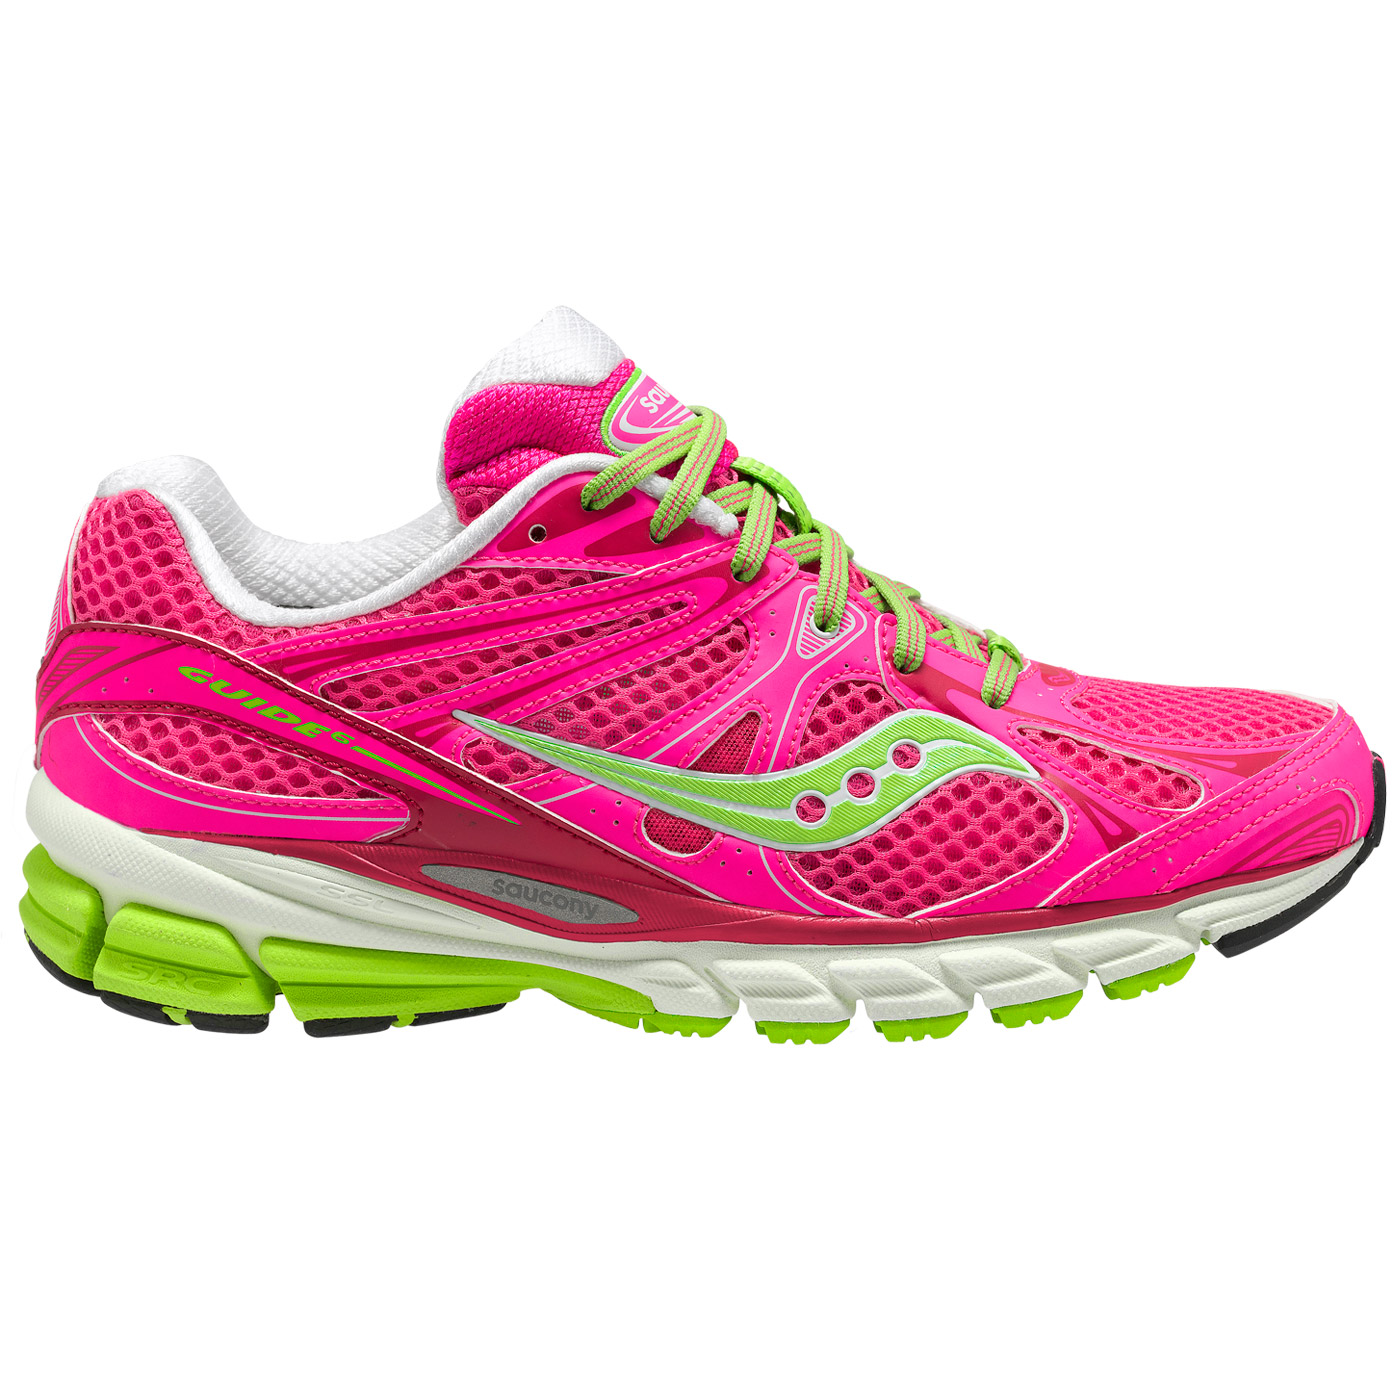 Women's Saucony Progrid Guide 6 ViZiProPink-Green